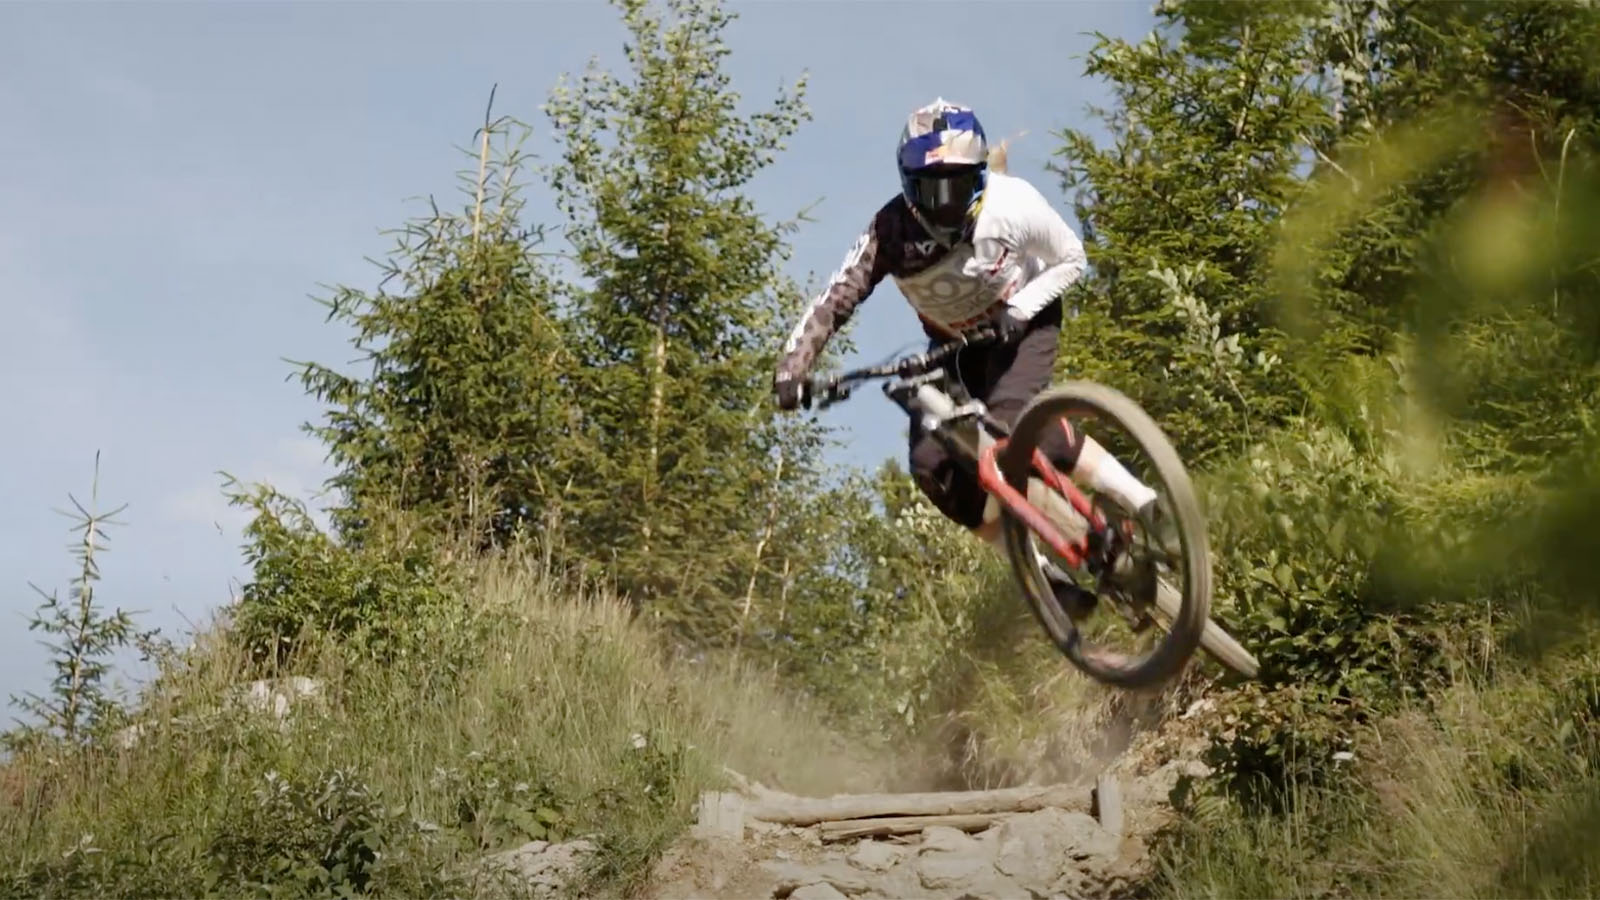 The Young Talent is Ready - Vali Höll's Sound of Speed